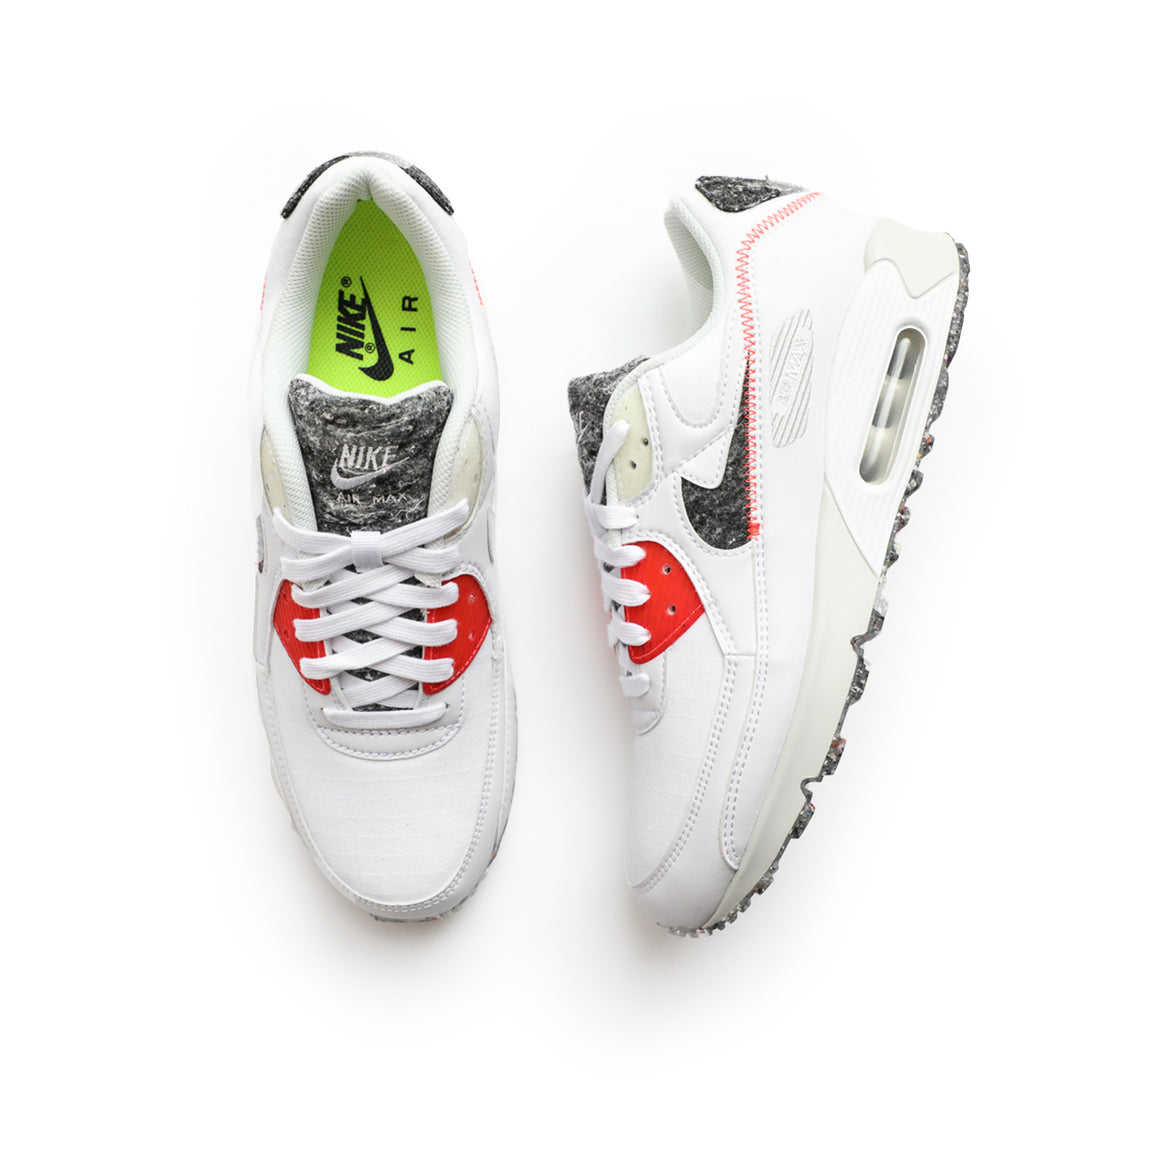 Nike Air Max 90 (White/Photon Dust/Bright Crimson) - Nike Air Max 90 (White/Photon Dust/Bright Crimson) -